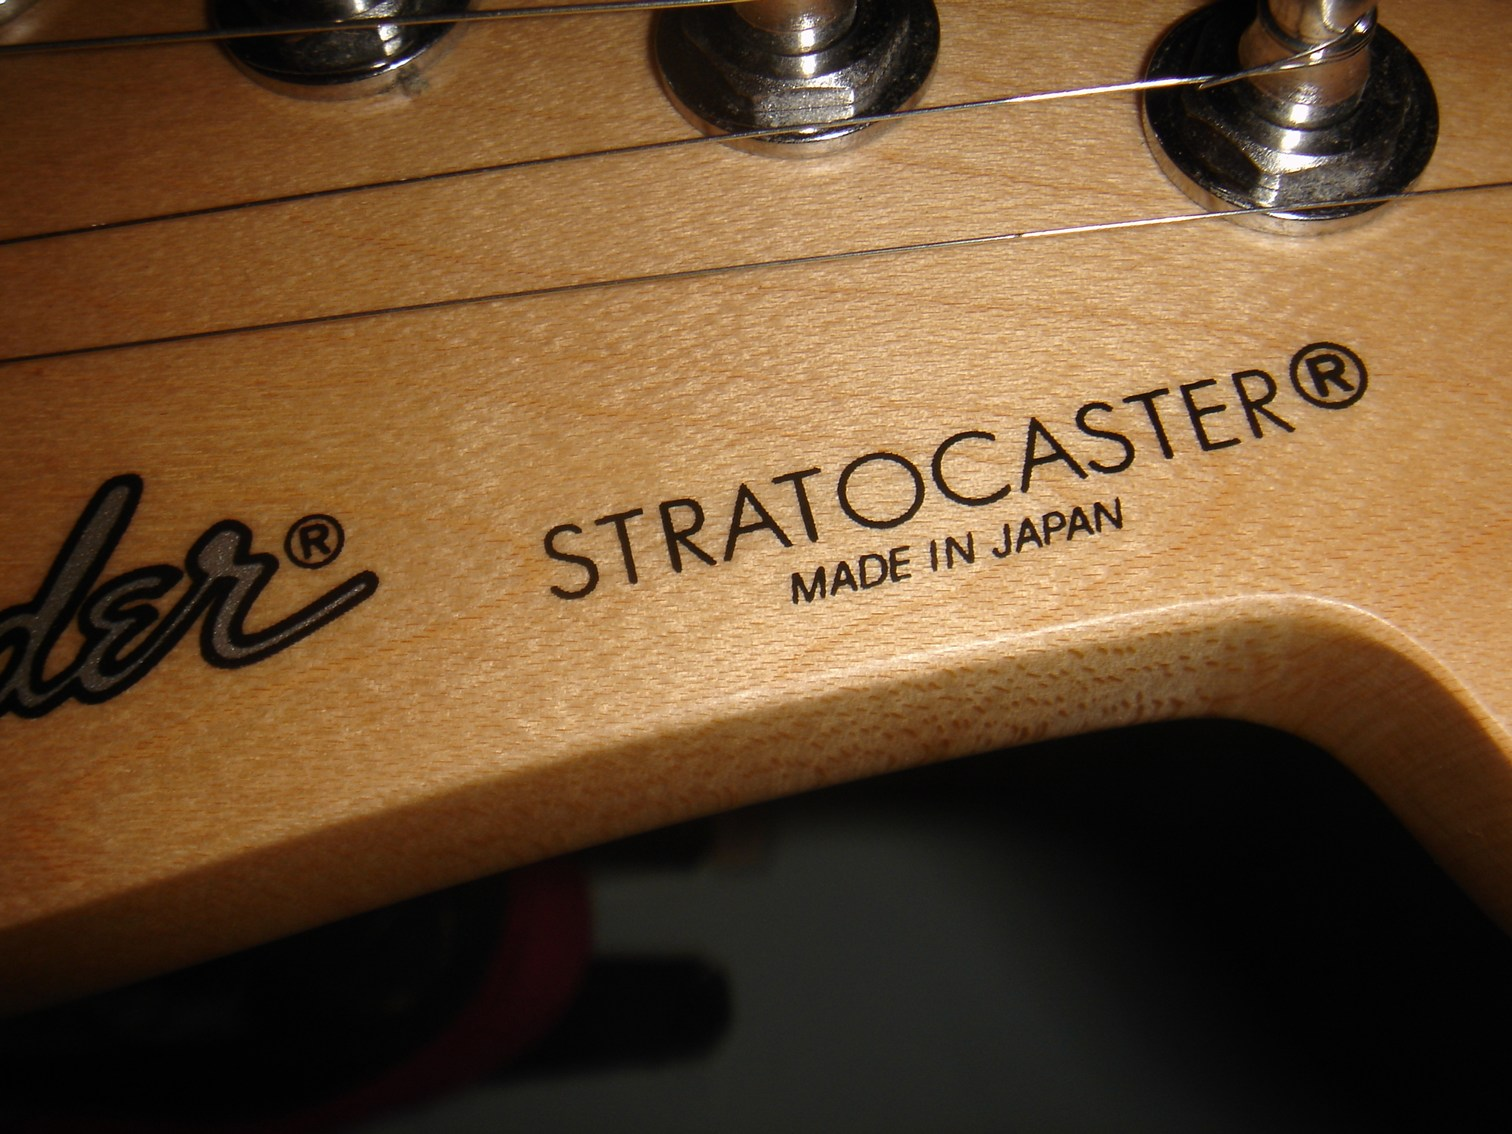 Thread vintage 1993 made in japan fender stratocaster rosewood neck